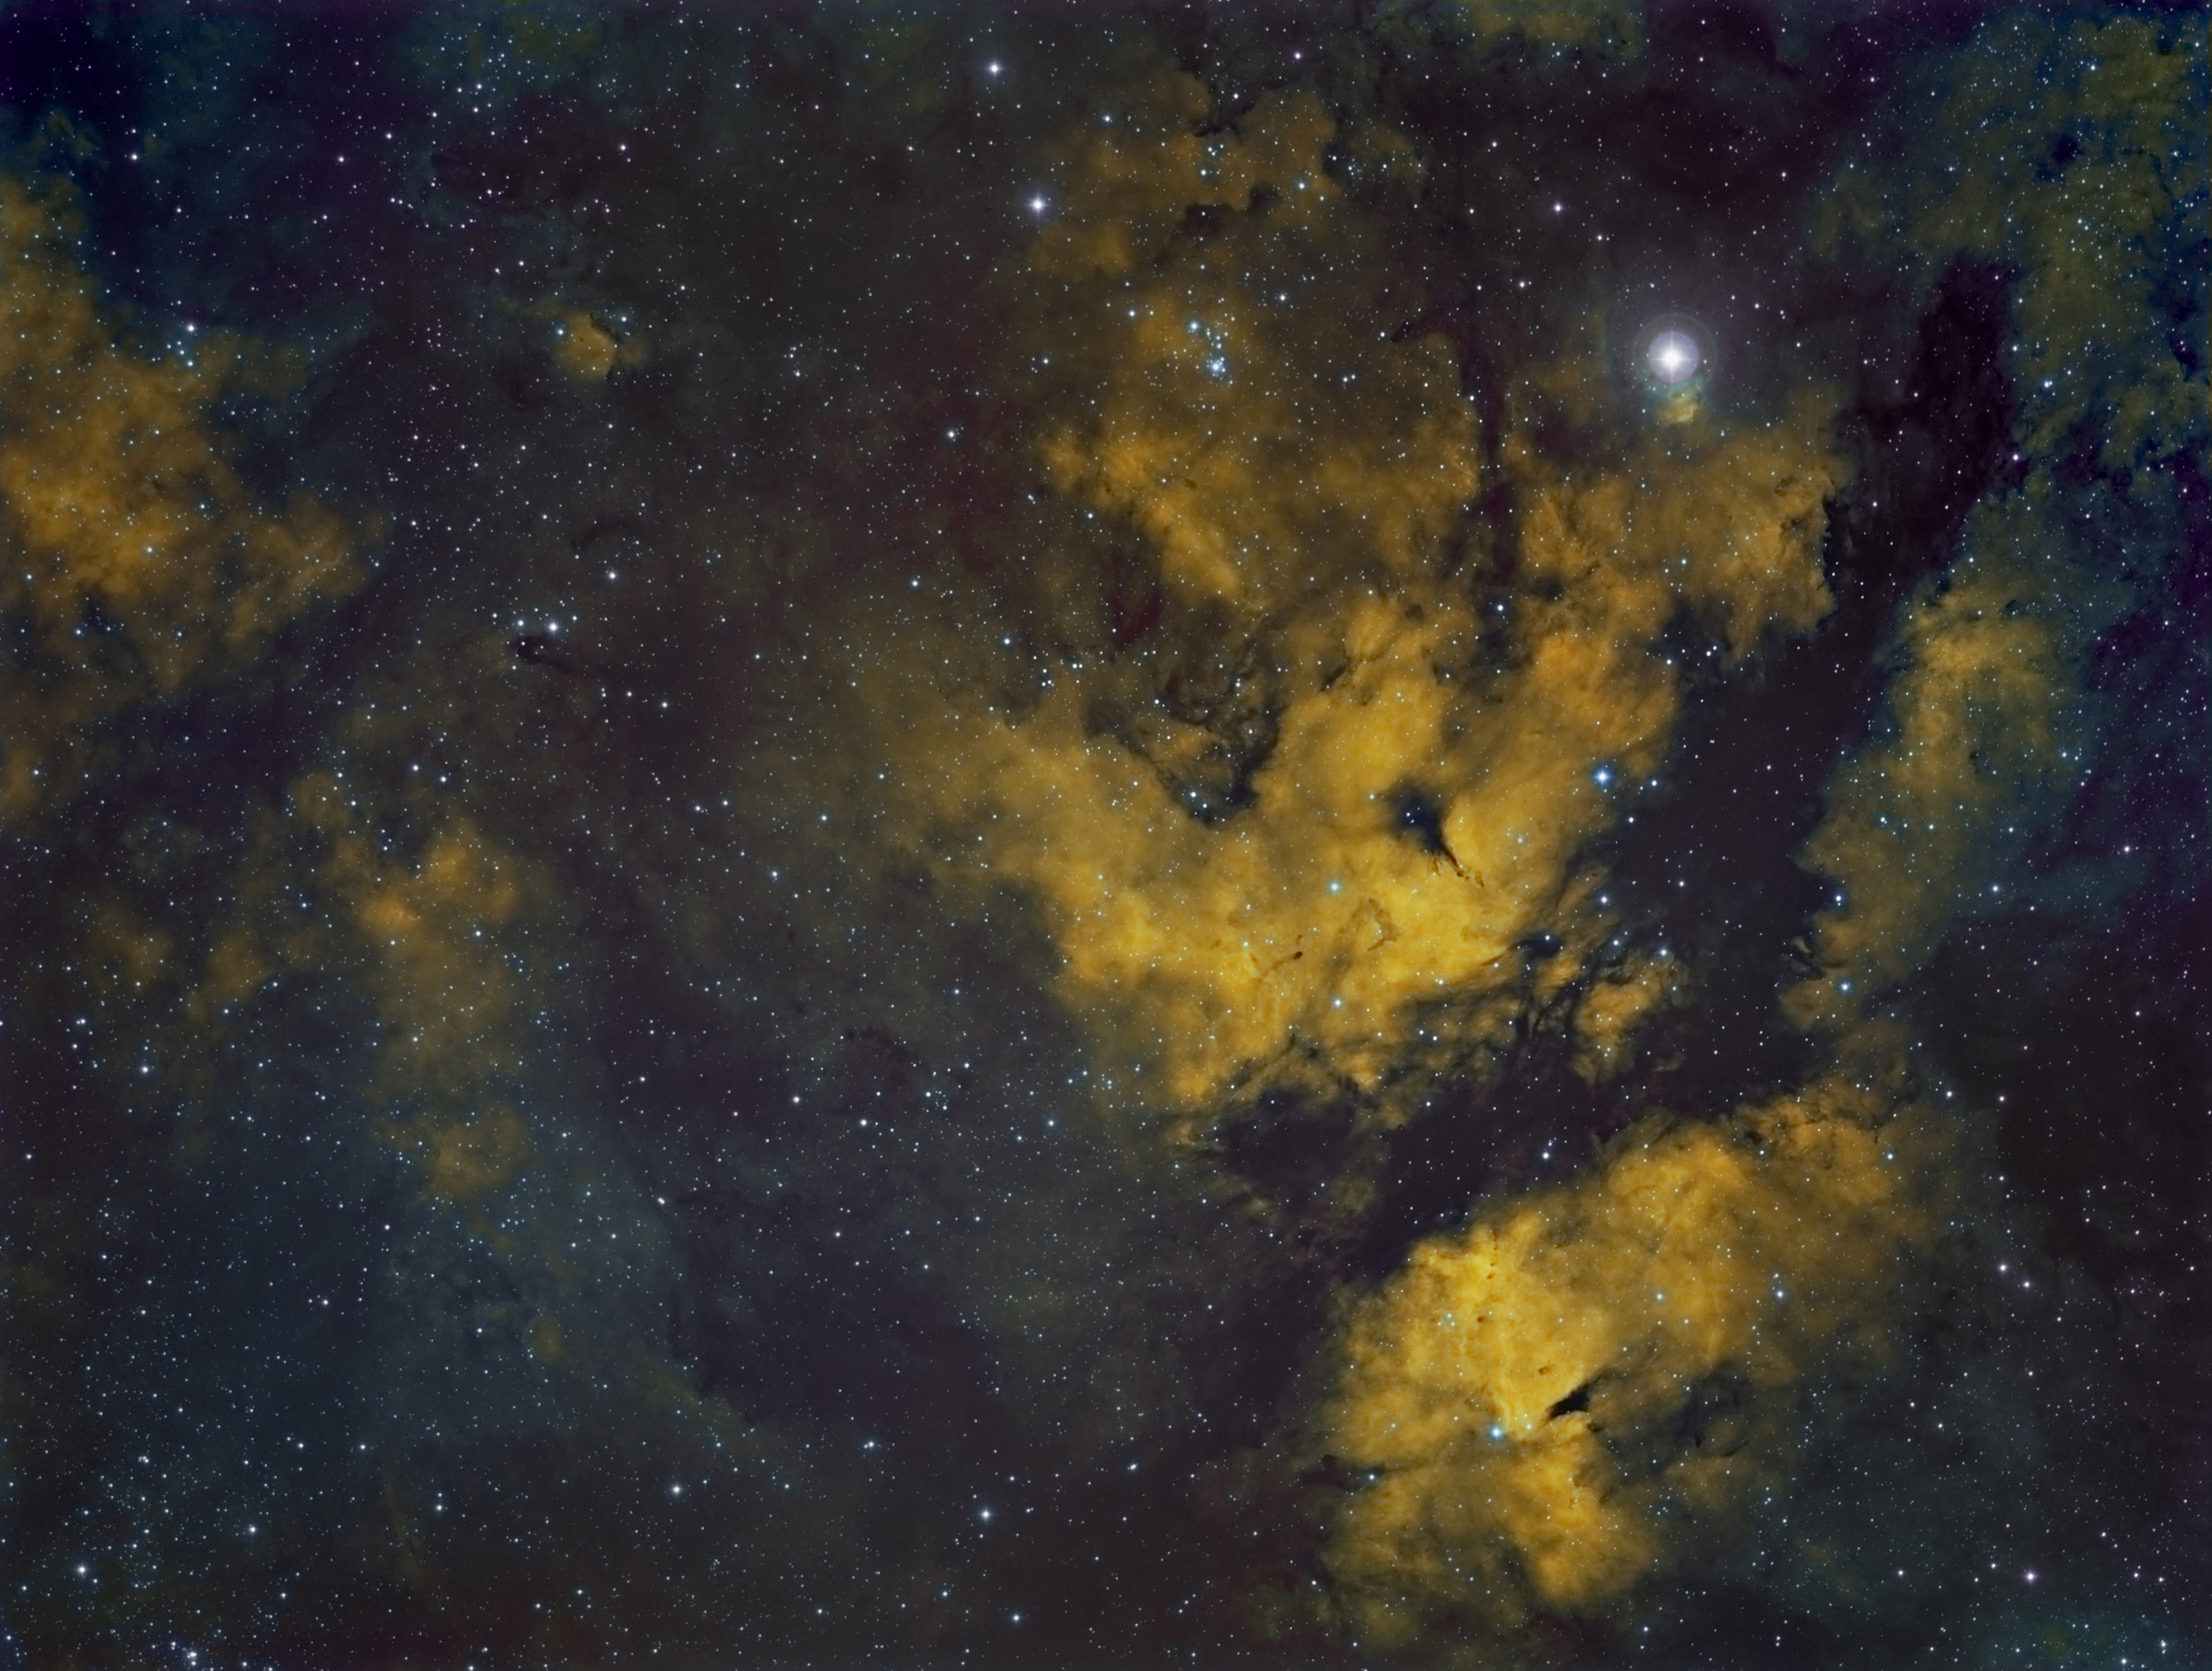 IC 1318 in the Hubble pallet